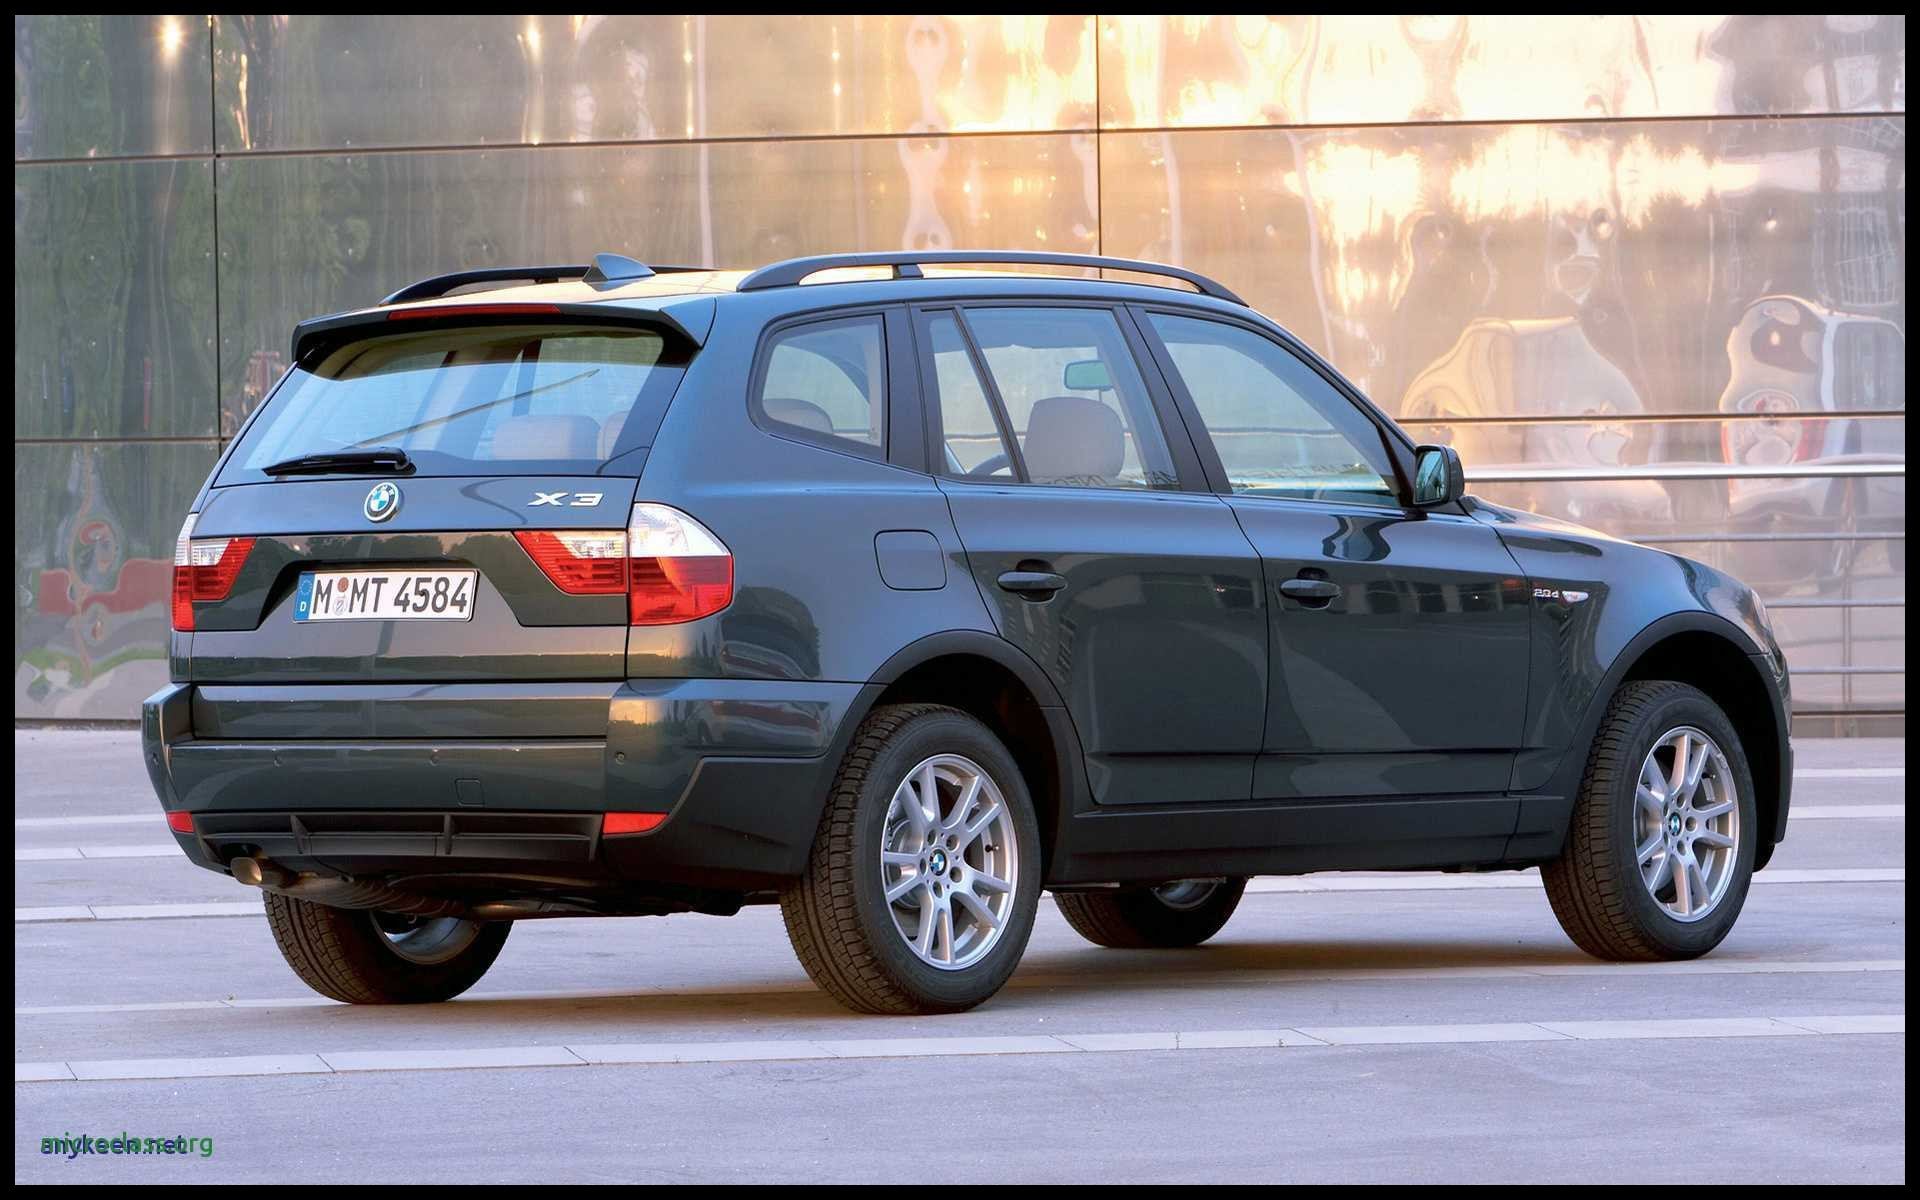 Bmw Wallpaper Luxury Bmw X3 2 0d 2007 Wallpapers And Hd Car Pixel Downloads Bmw Wallpaper Bike